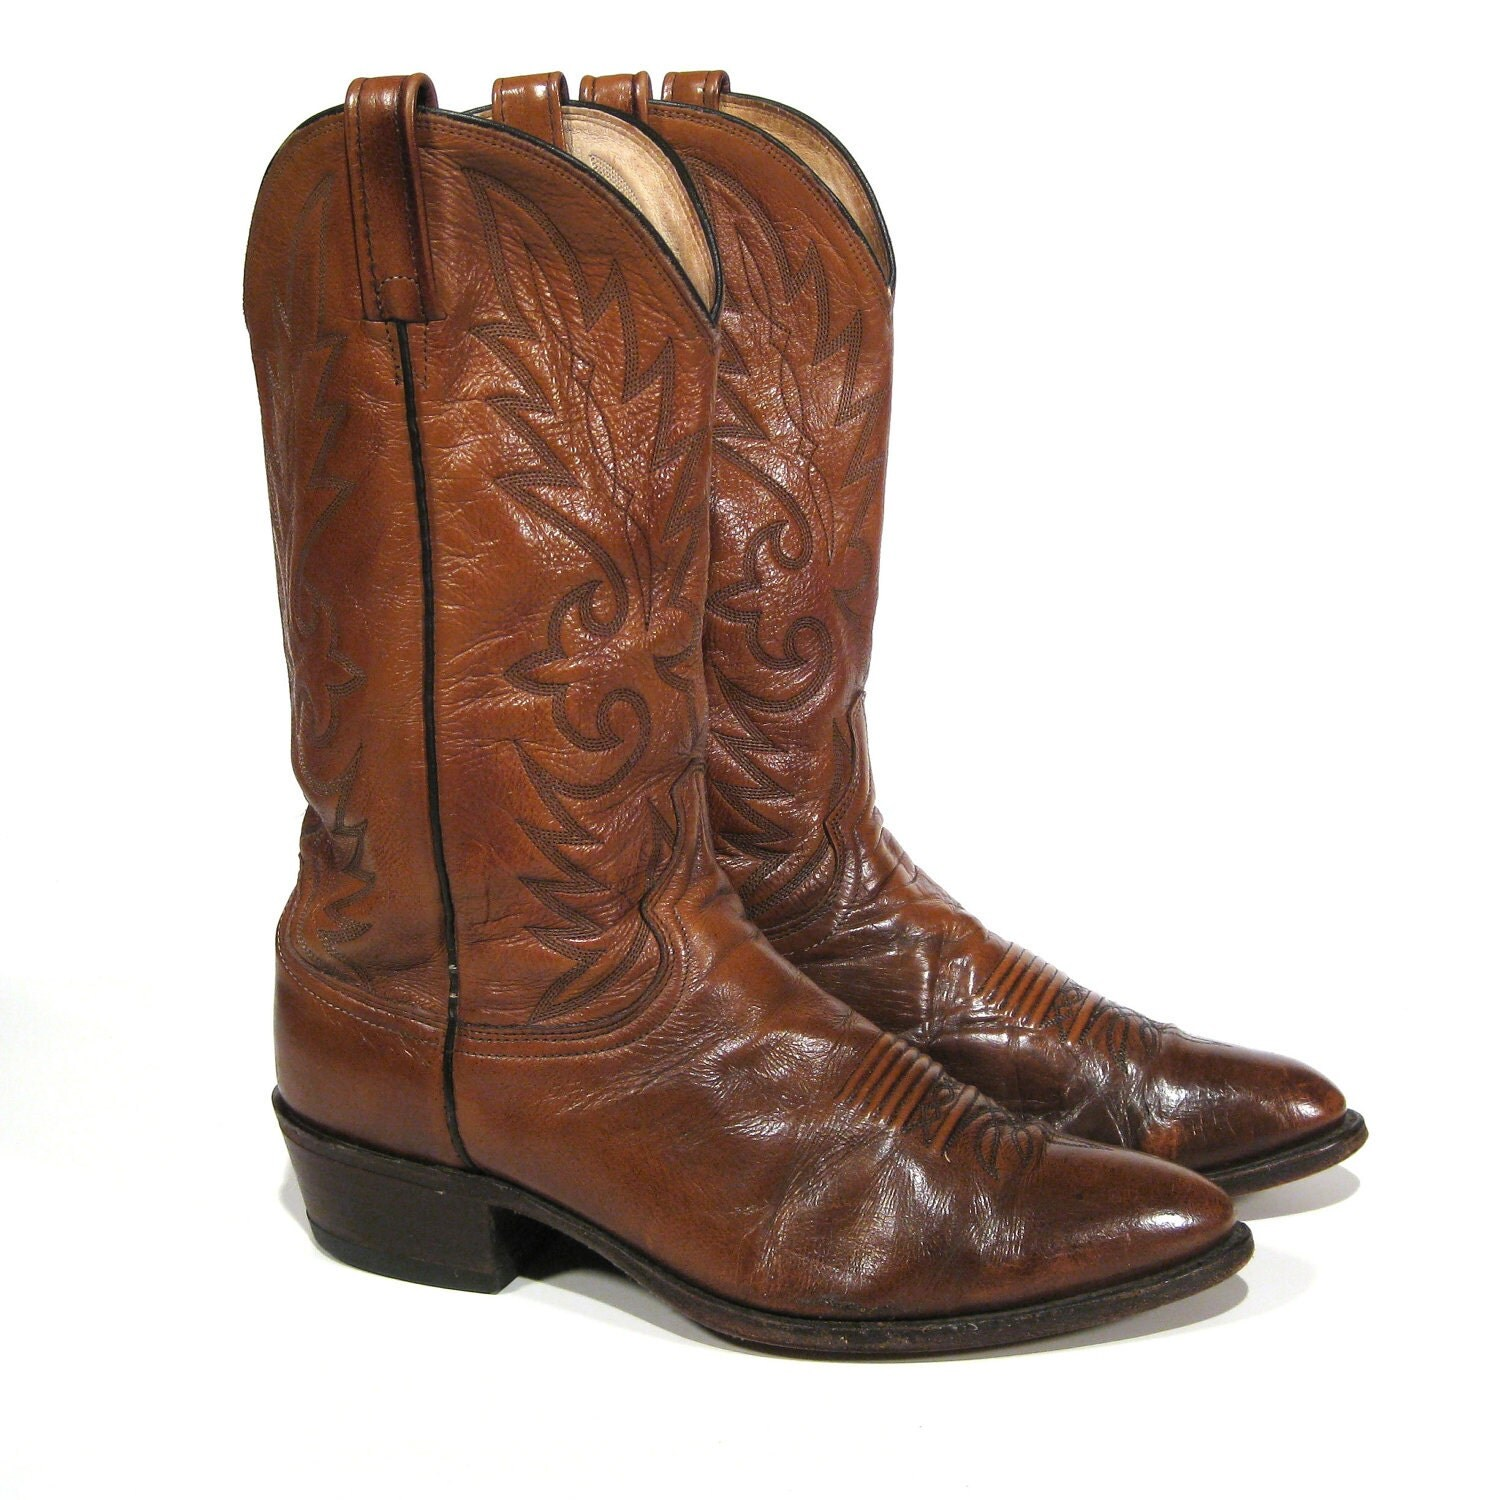 vintage s cowboy boots 11 d dan post by texasbootexchange